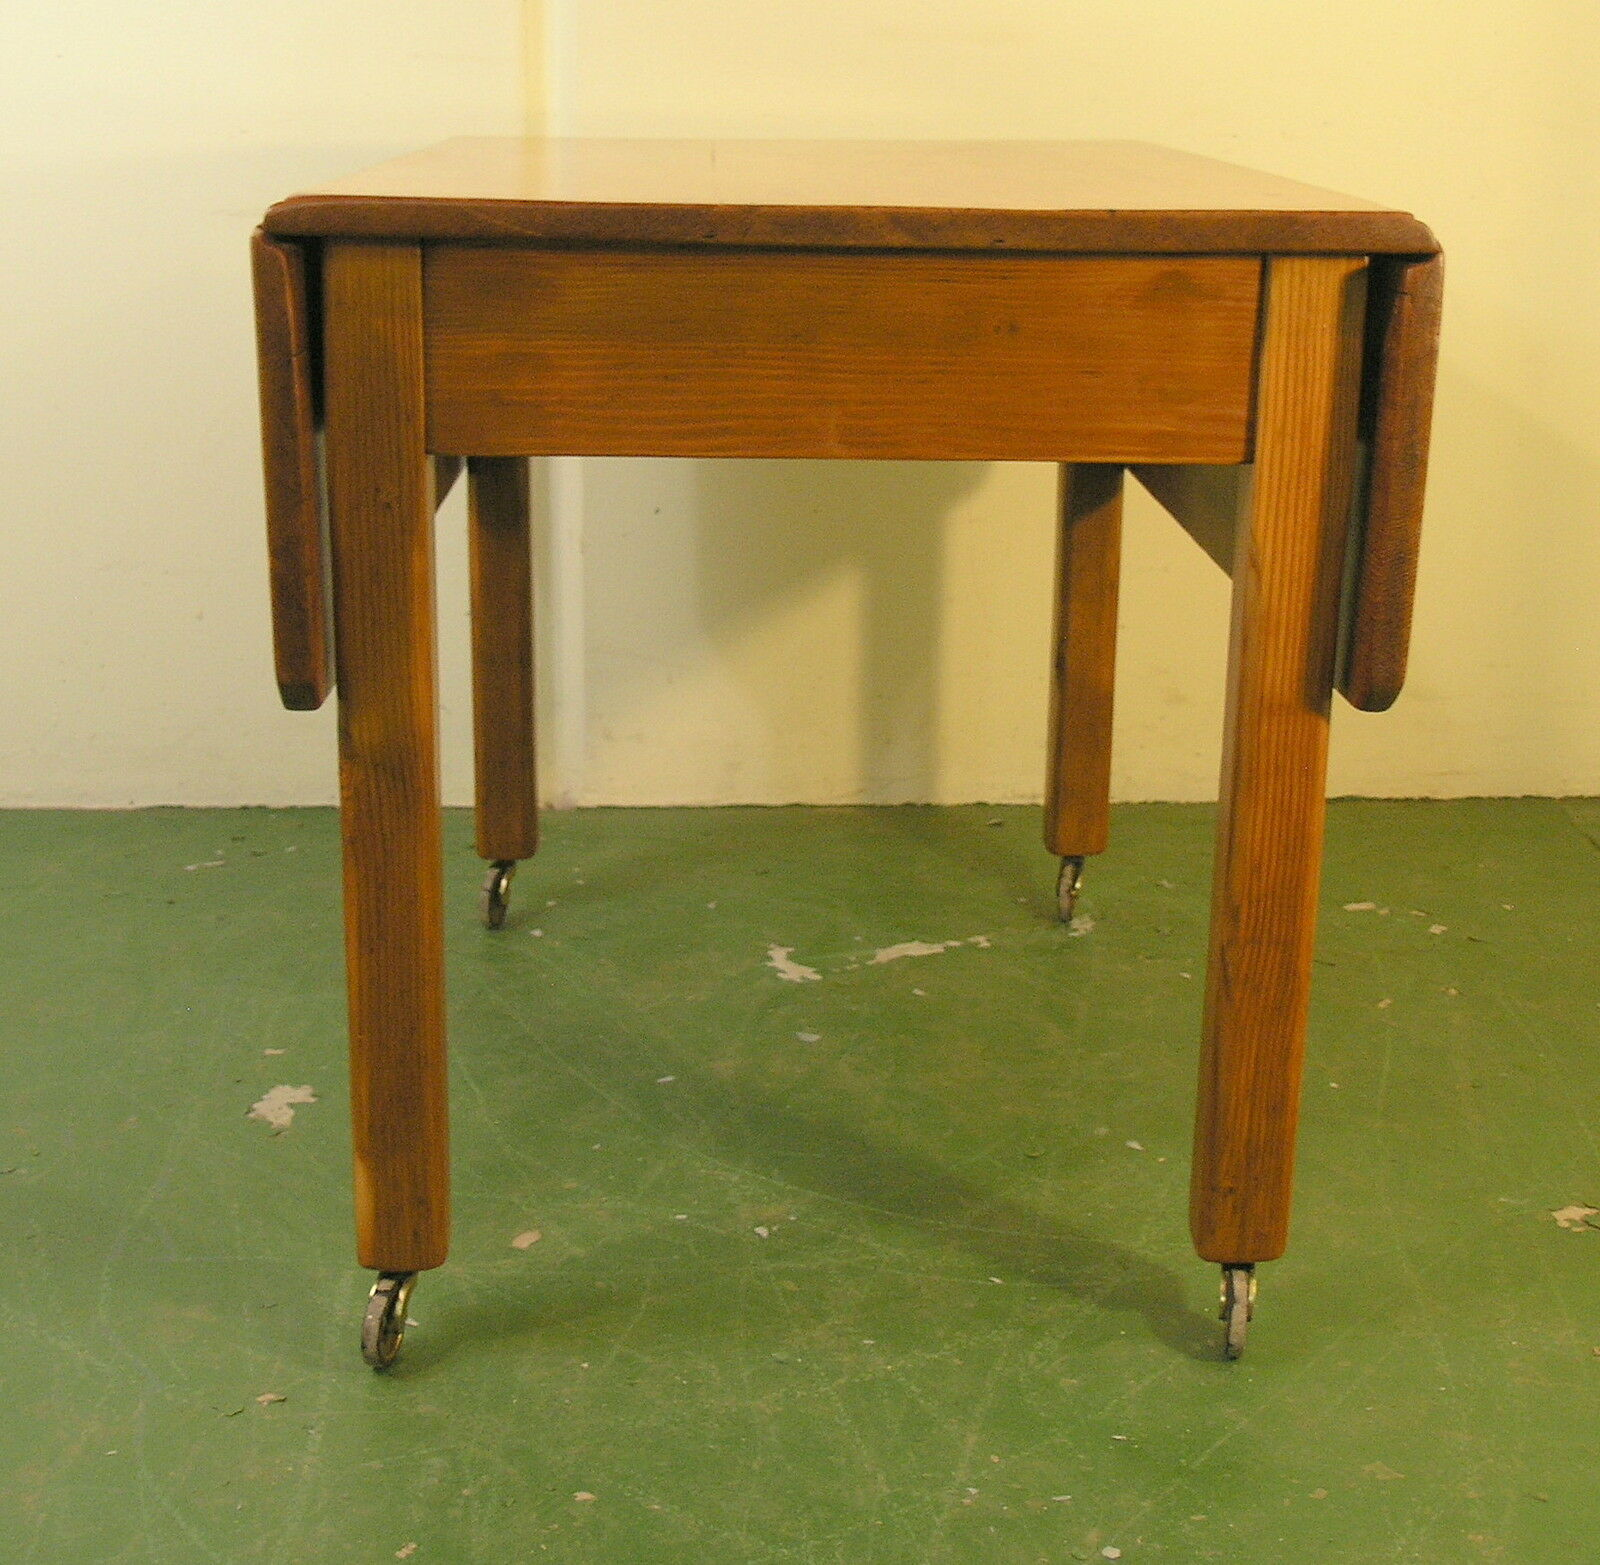 Antique drop leaf work table dining kitchen c1910 refinished pine sturdy 052 picclick - Drop leaf kitchen table ...